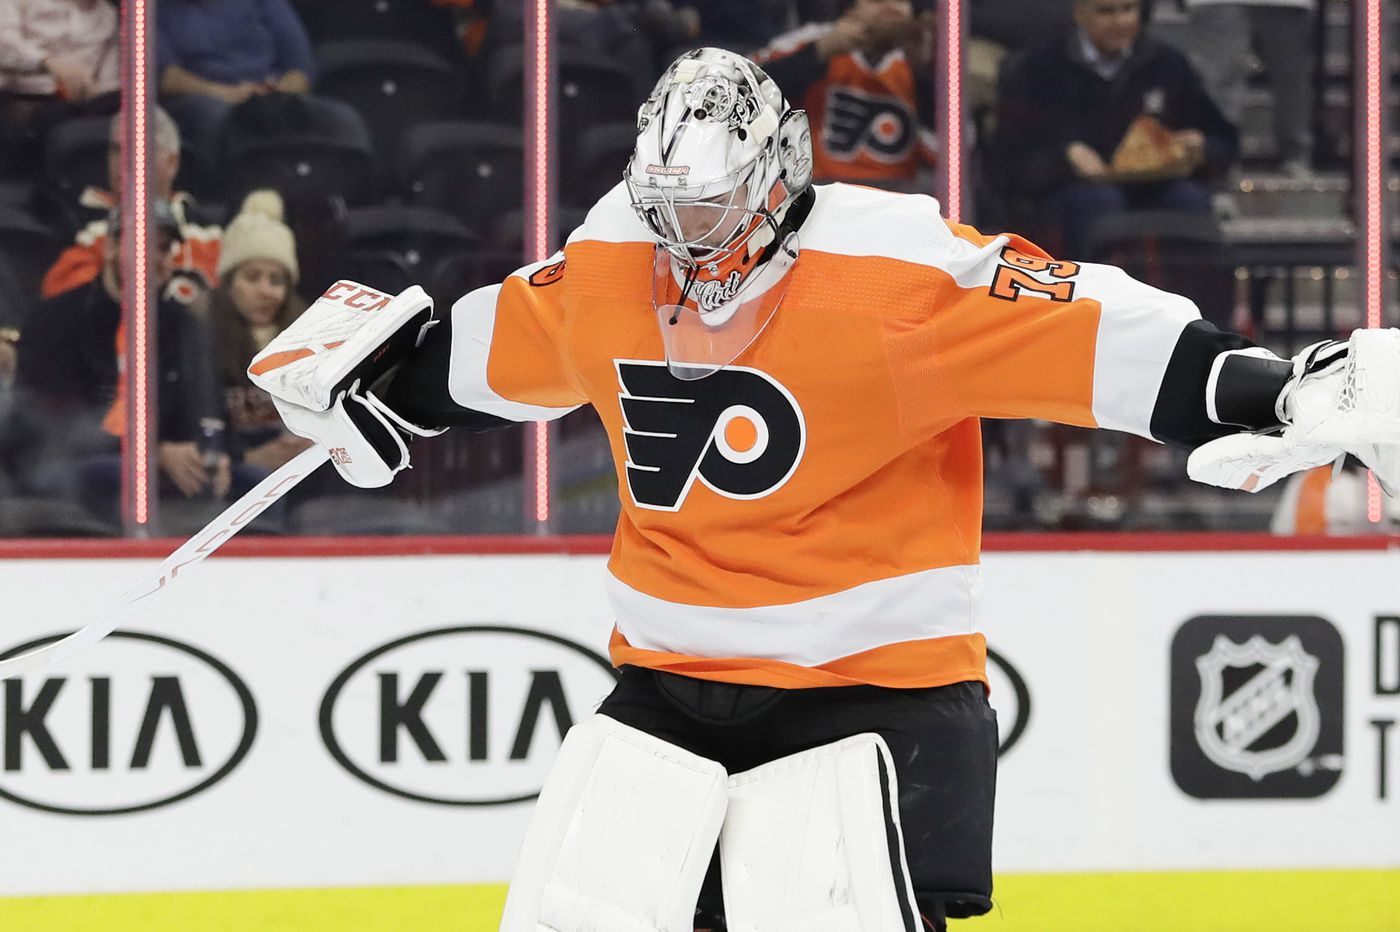 Carter Hart will get the start as Flyers go for eight in a row with a chance at first place